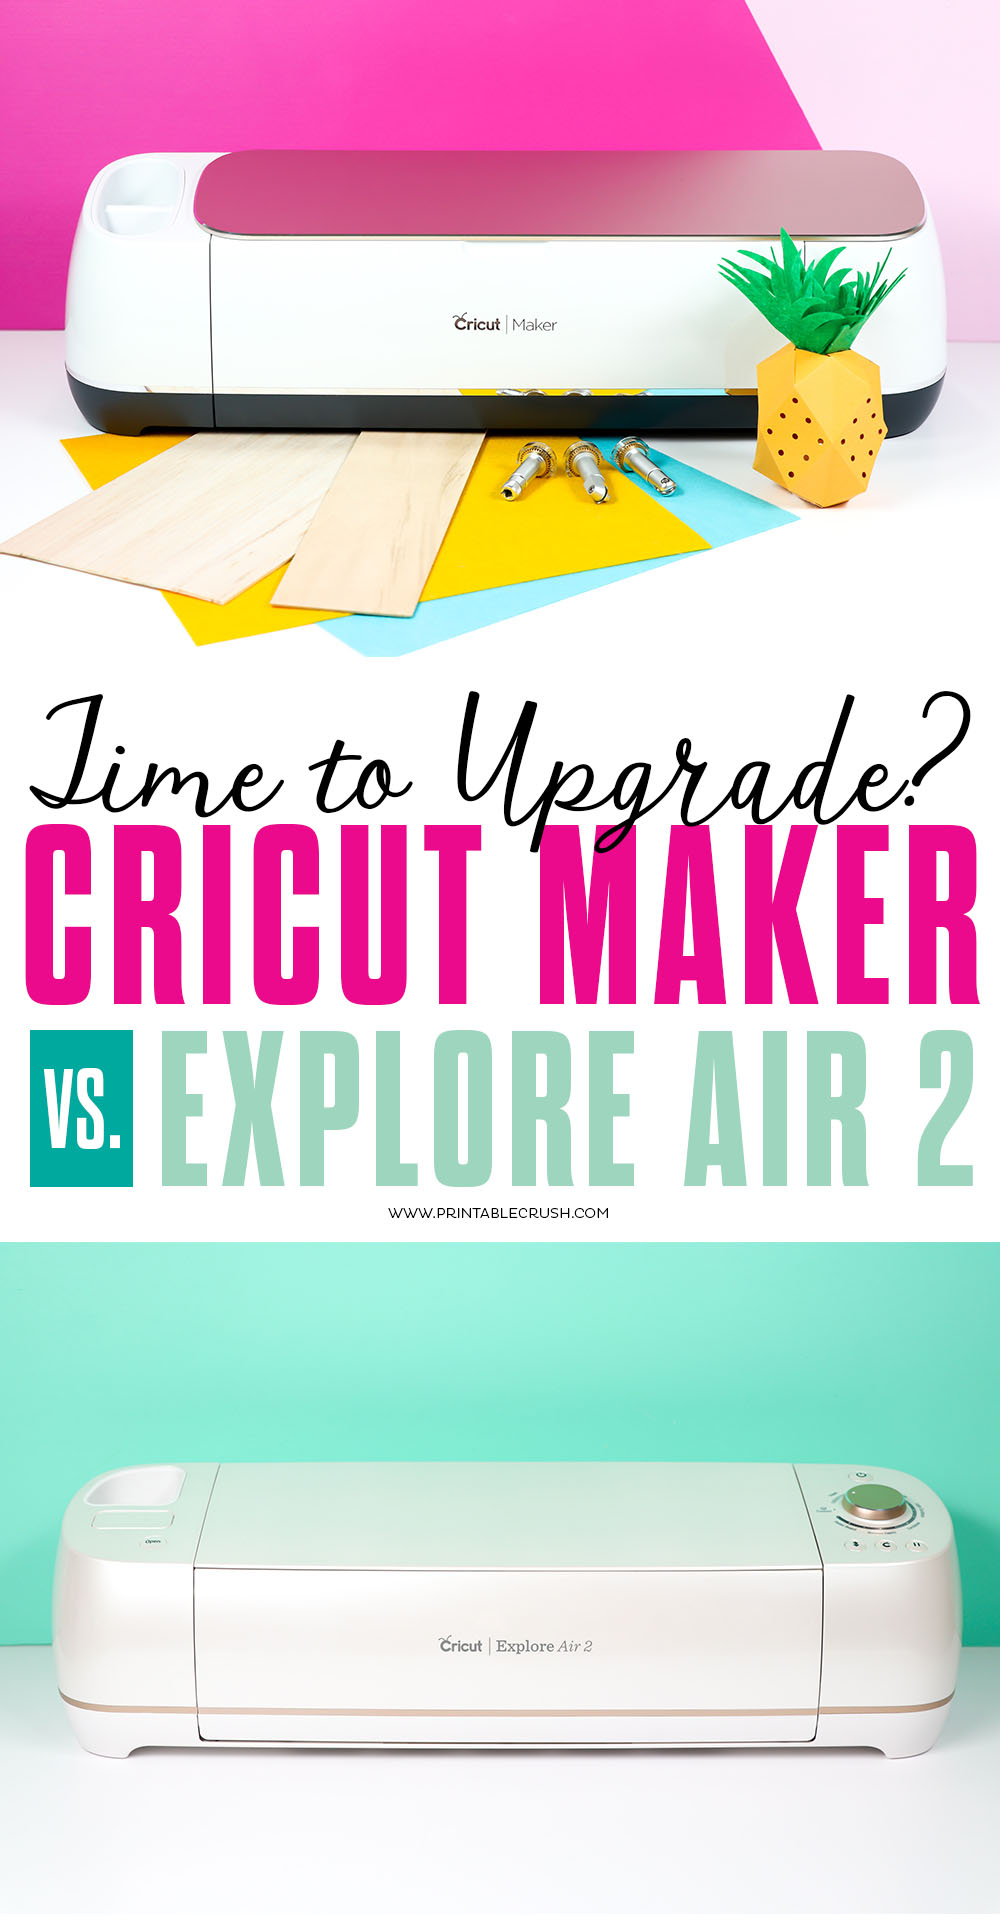 You may need to Upgrade from the Cricut Explore Air to the Cricut Maker. Check out this post on the Cricut Maker Vs. Explore Air 2 to see what the Maker can do! #cricutmade #sayitwithcricut #cricutmaker #cricutupgrade via @printablecrush